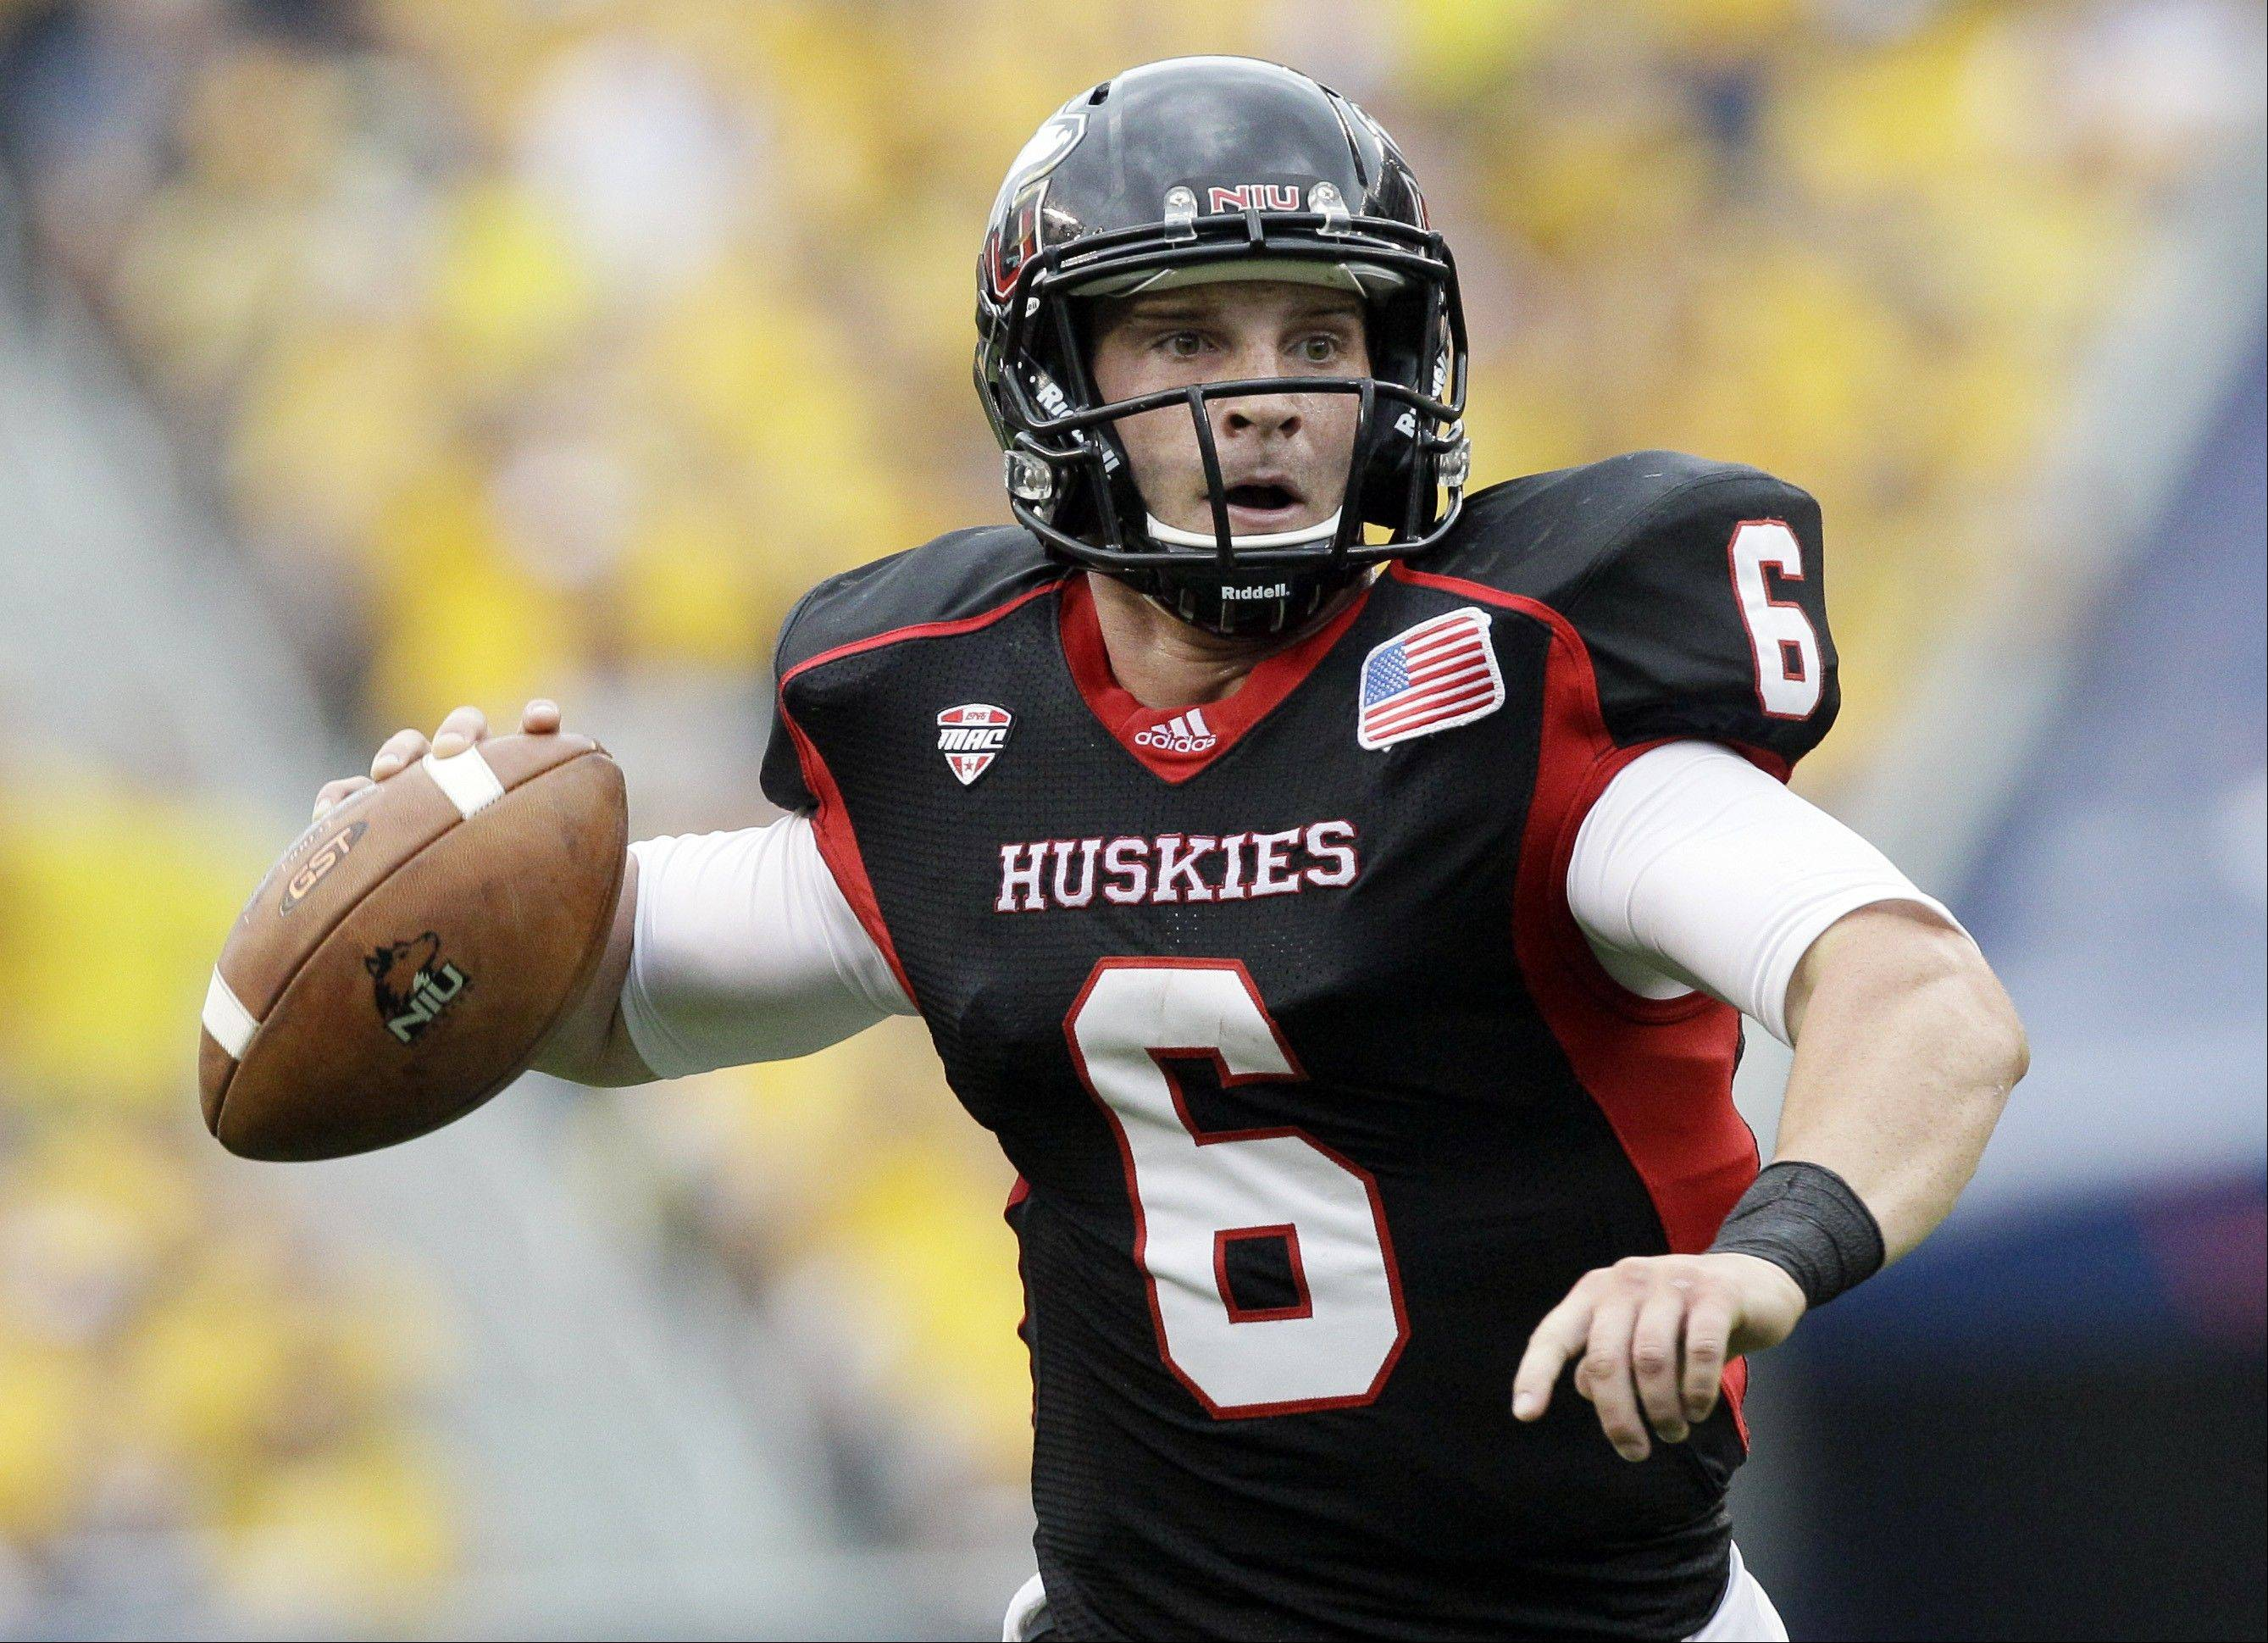 Northern Illinois quarterback Jordan Lynch is averaging 7.1 yards per rushing attempt and completing 62.1 percent of his passes. His exploits in leading the Huskies to a 6-1 record so far have earned him a spot on the coveted Manning Watch list for top college quarterbacks.